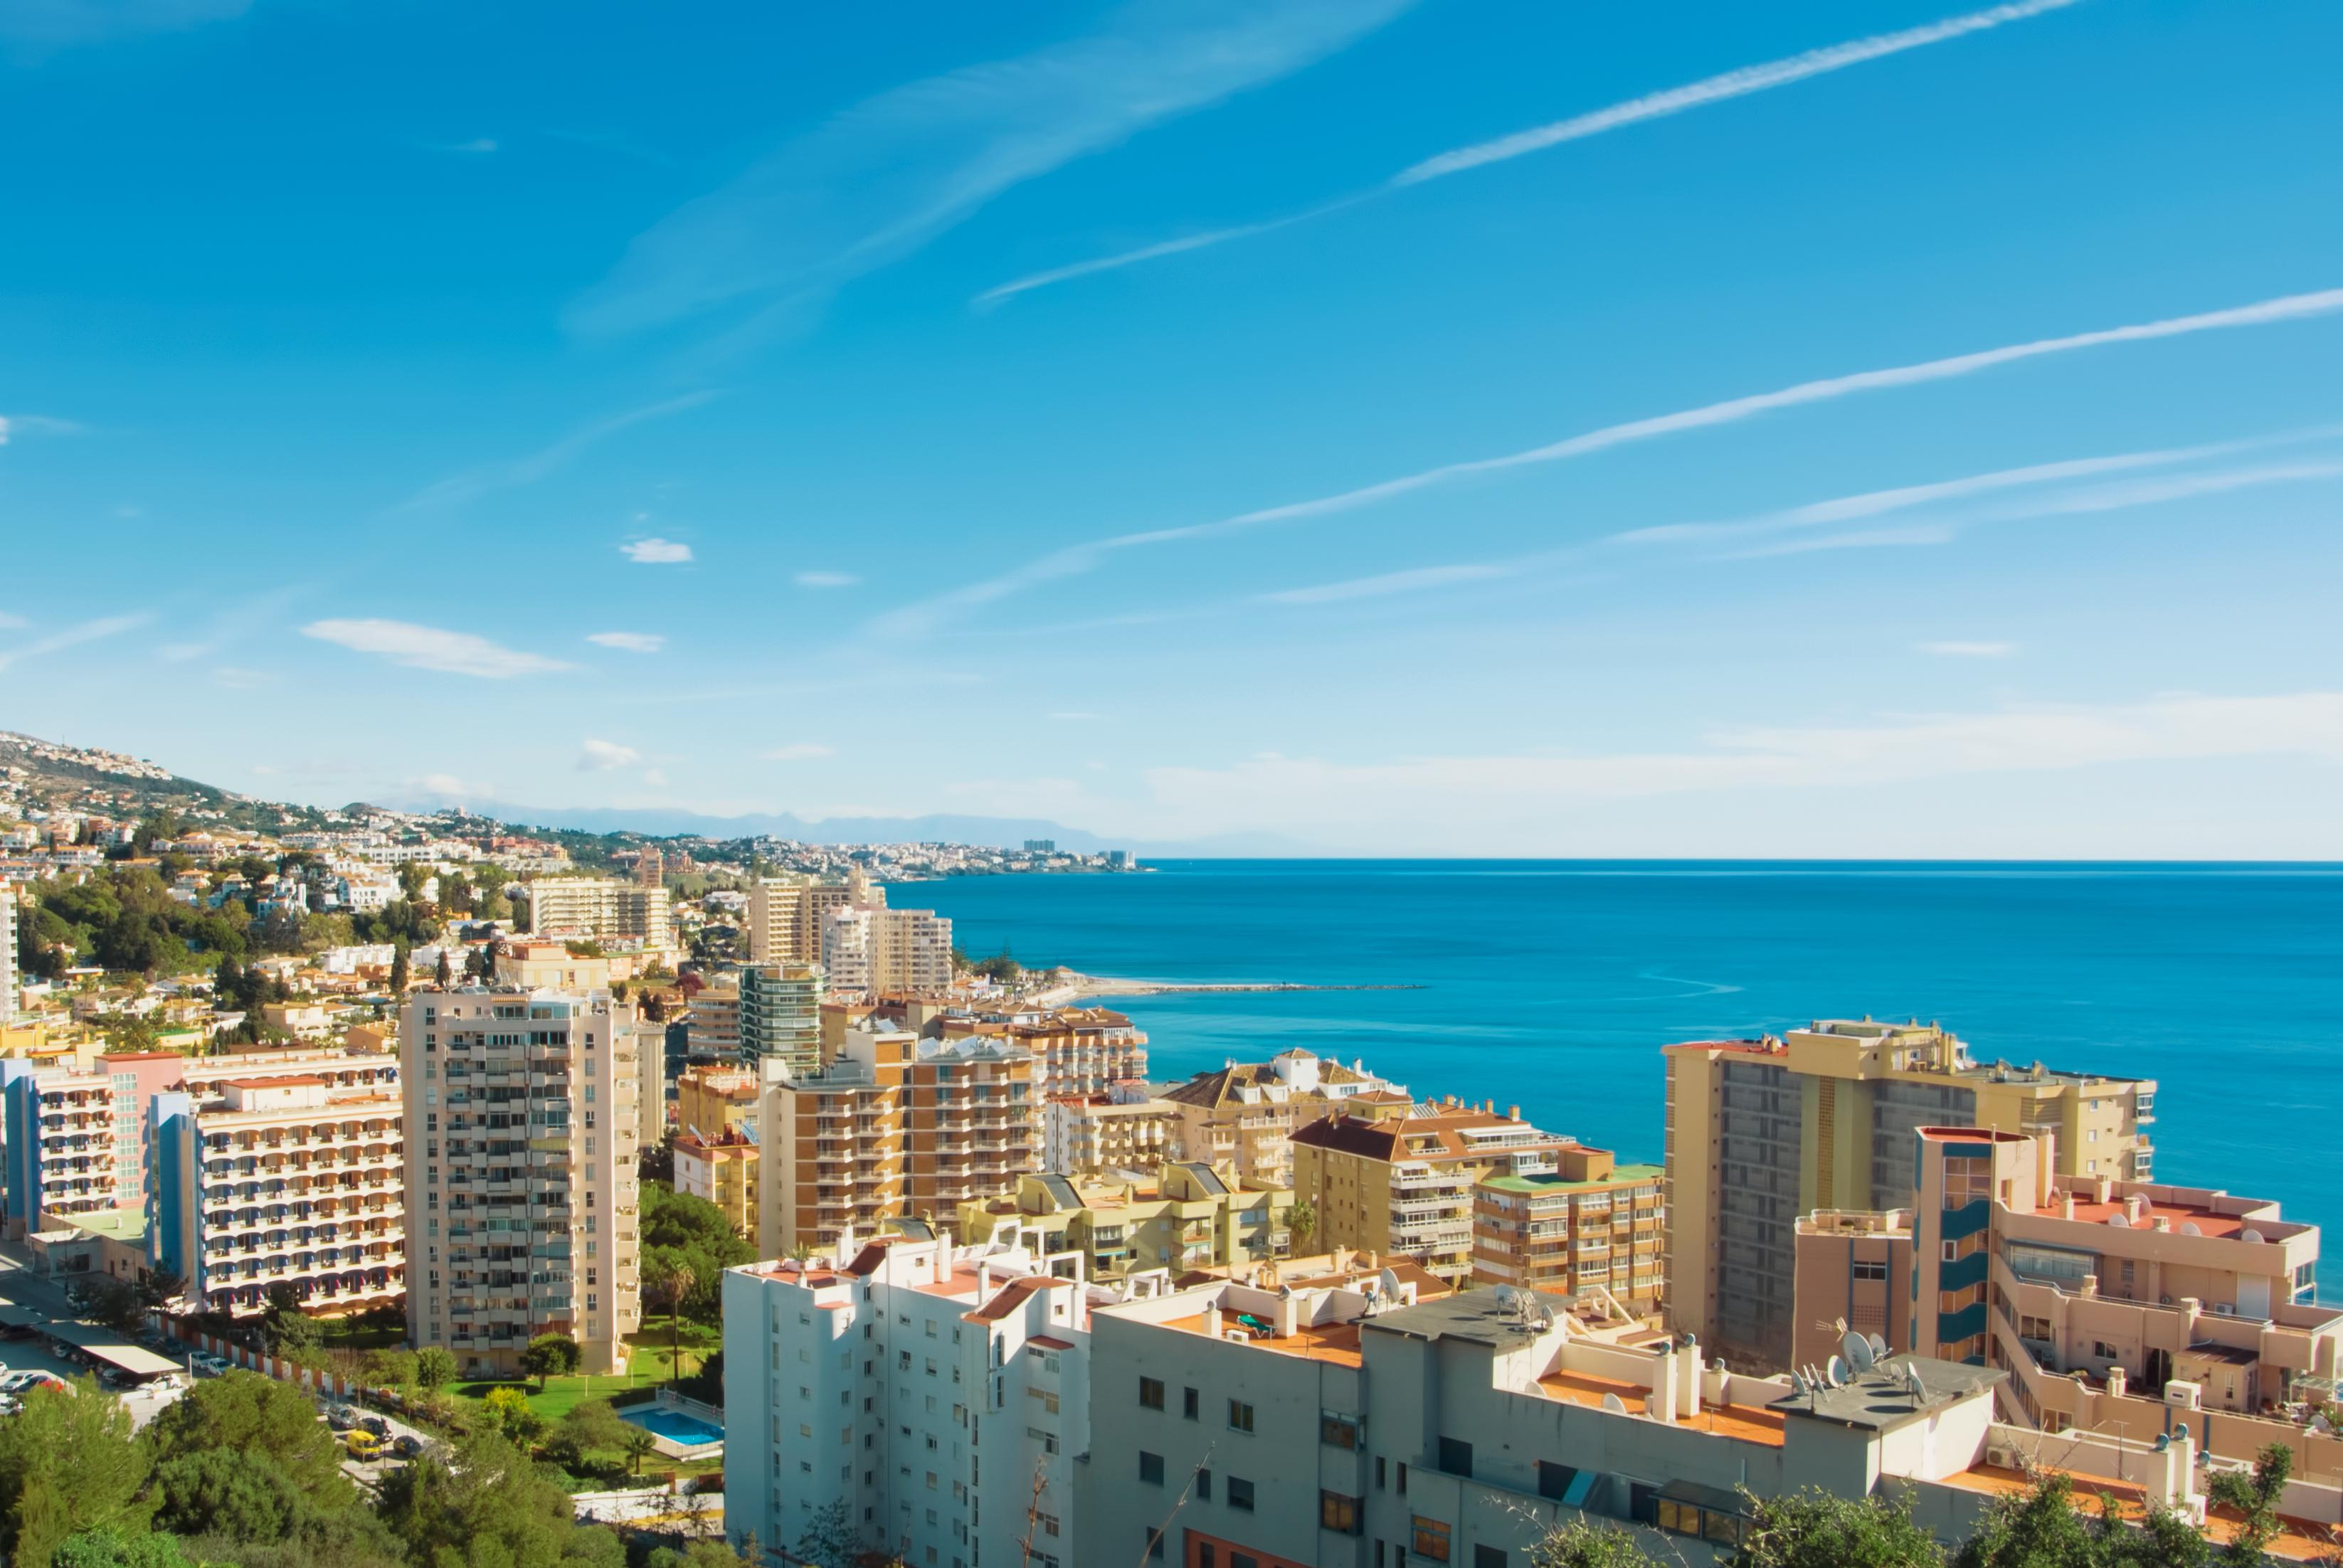 hotels in fuengirola from 28 find cheap fuengirola hotels with rh momondo com